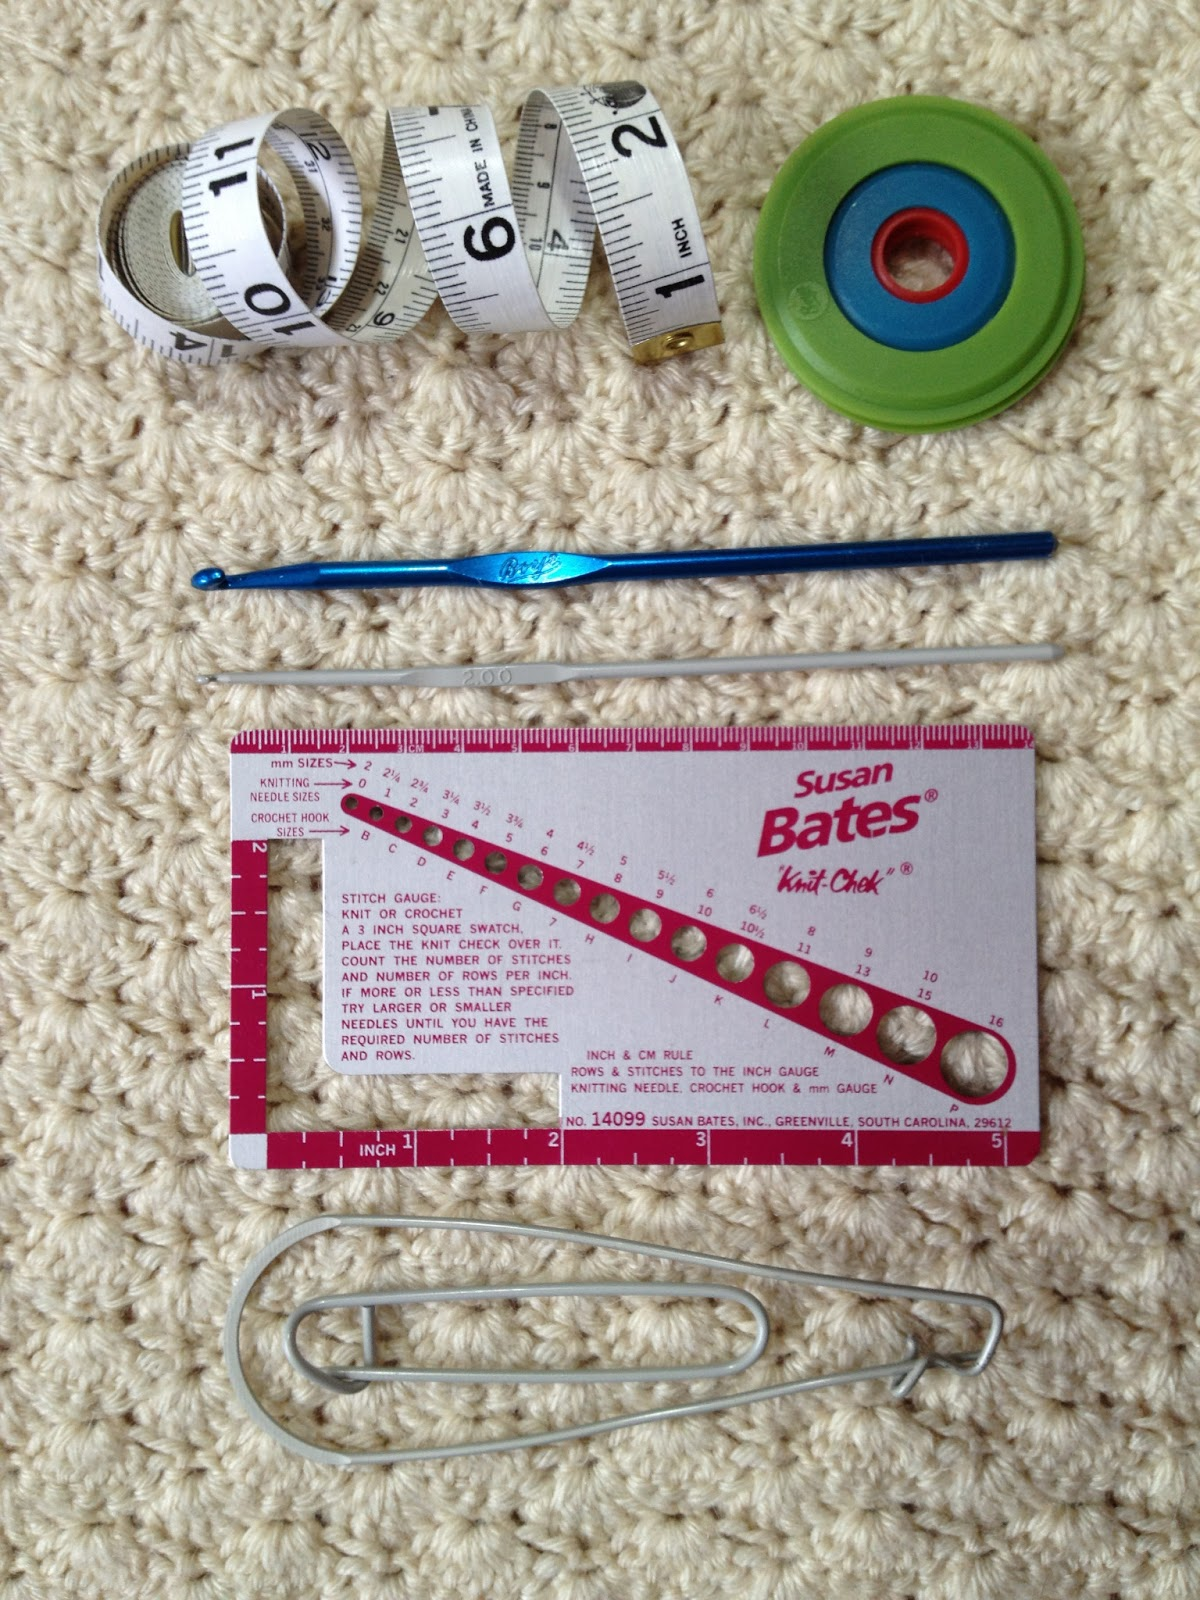 MEASURING TAPE, POM POM MAKER, CROCHET HOOKS, NEEDLE GAUGE, STITCH HOLDERS